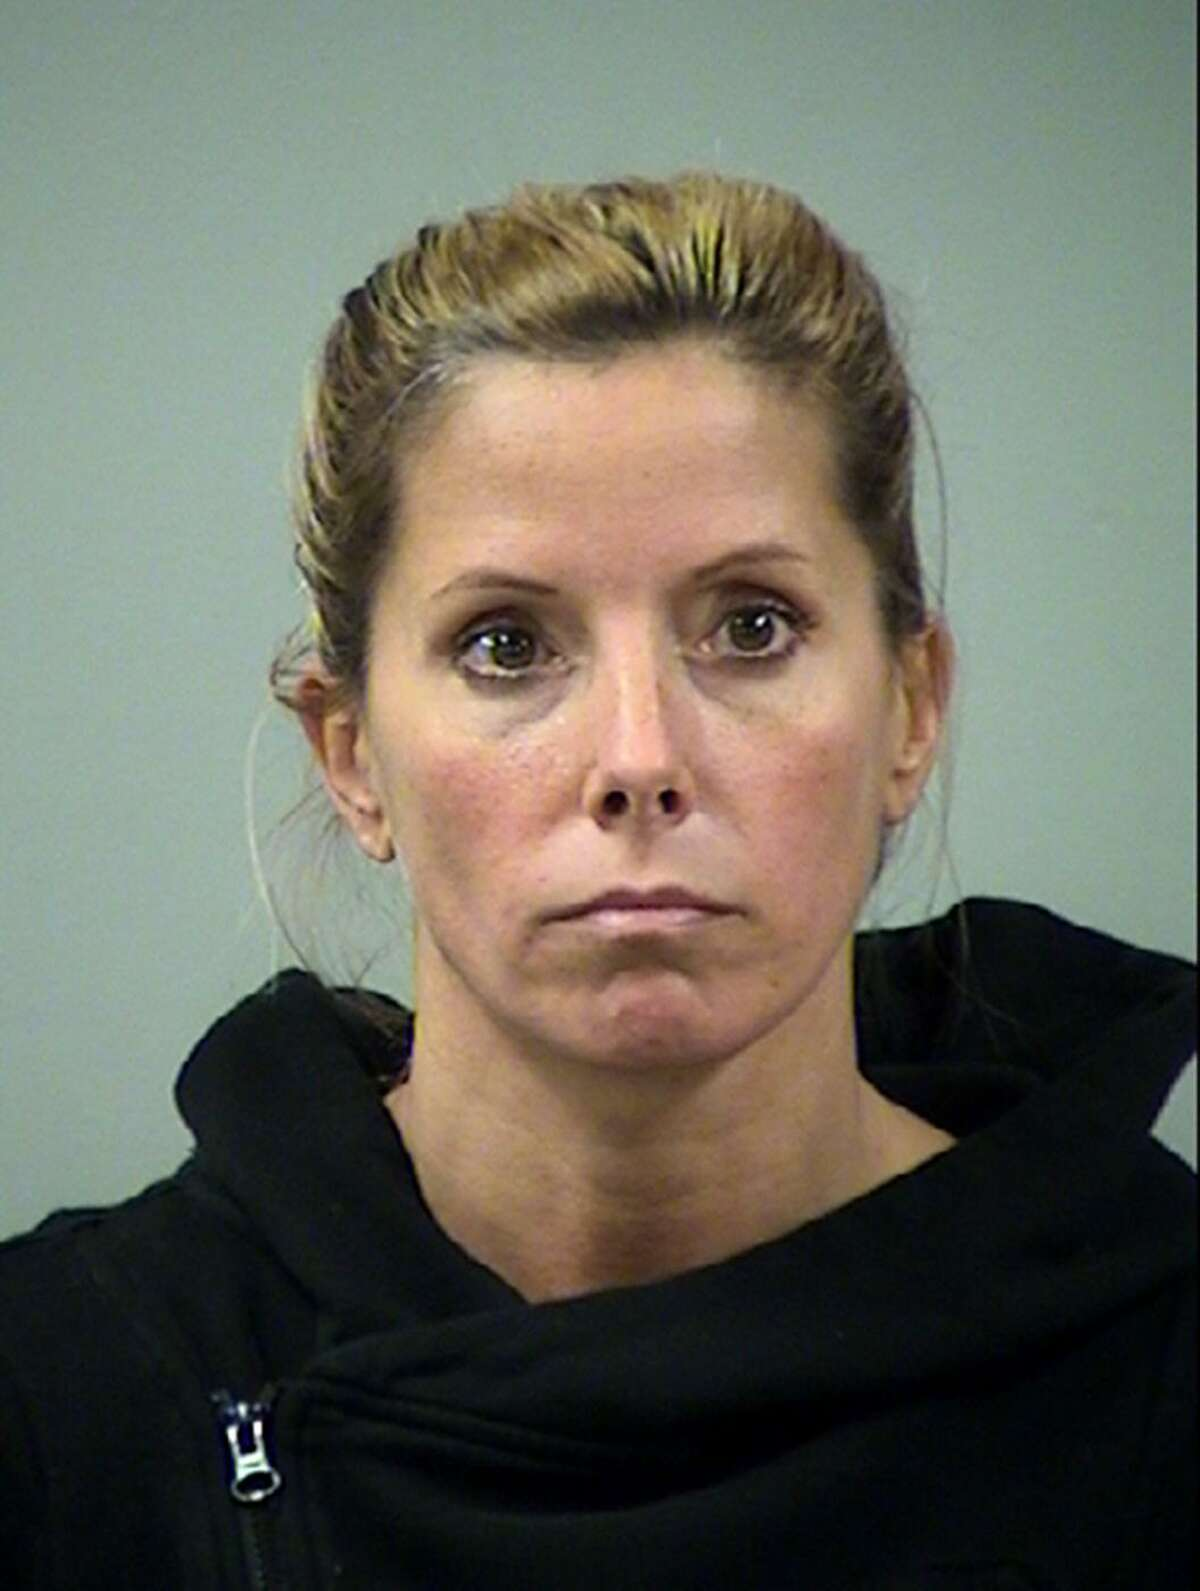 Holly Blakely, then 42, is shown in this mug shot from April 2016. In February, she admitted paying more than $400,000 in kickbacks and bribes to health care providers prescribing compound medications for pain to people who did not need them. She is set to be sentenced Tuesday, July 30.